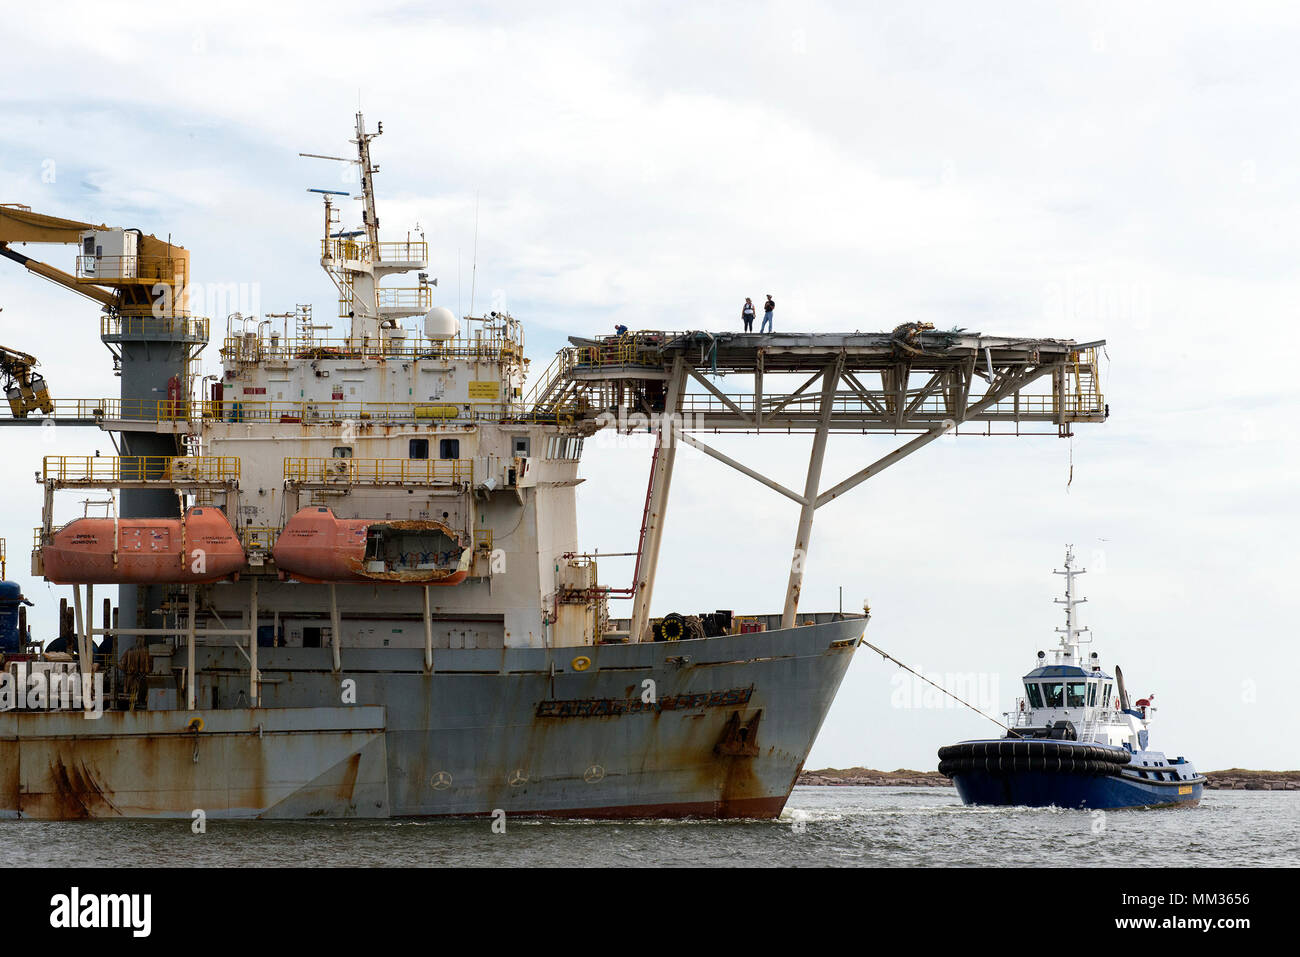 Coast Guard monitors the recovery and transit of the grounded drill ship Paragon DPDS1, Sept. 4, 2017, in the Aransas Pass near Corpus Christi, Texas.     After the Coast Guard approved the salvage plan for the drill ship, the vessel was recovered and towed to Gulf Marine Fabricators in Corpus Christi, Texas. U.S. Coast Guard photo by Petty Officer 2nd Class Cory J. Mendenhall. - Stock Image